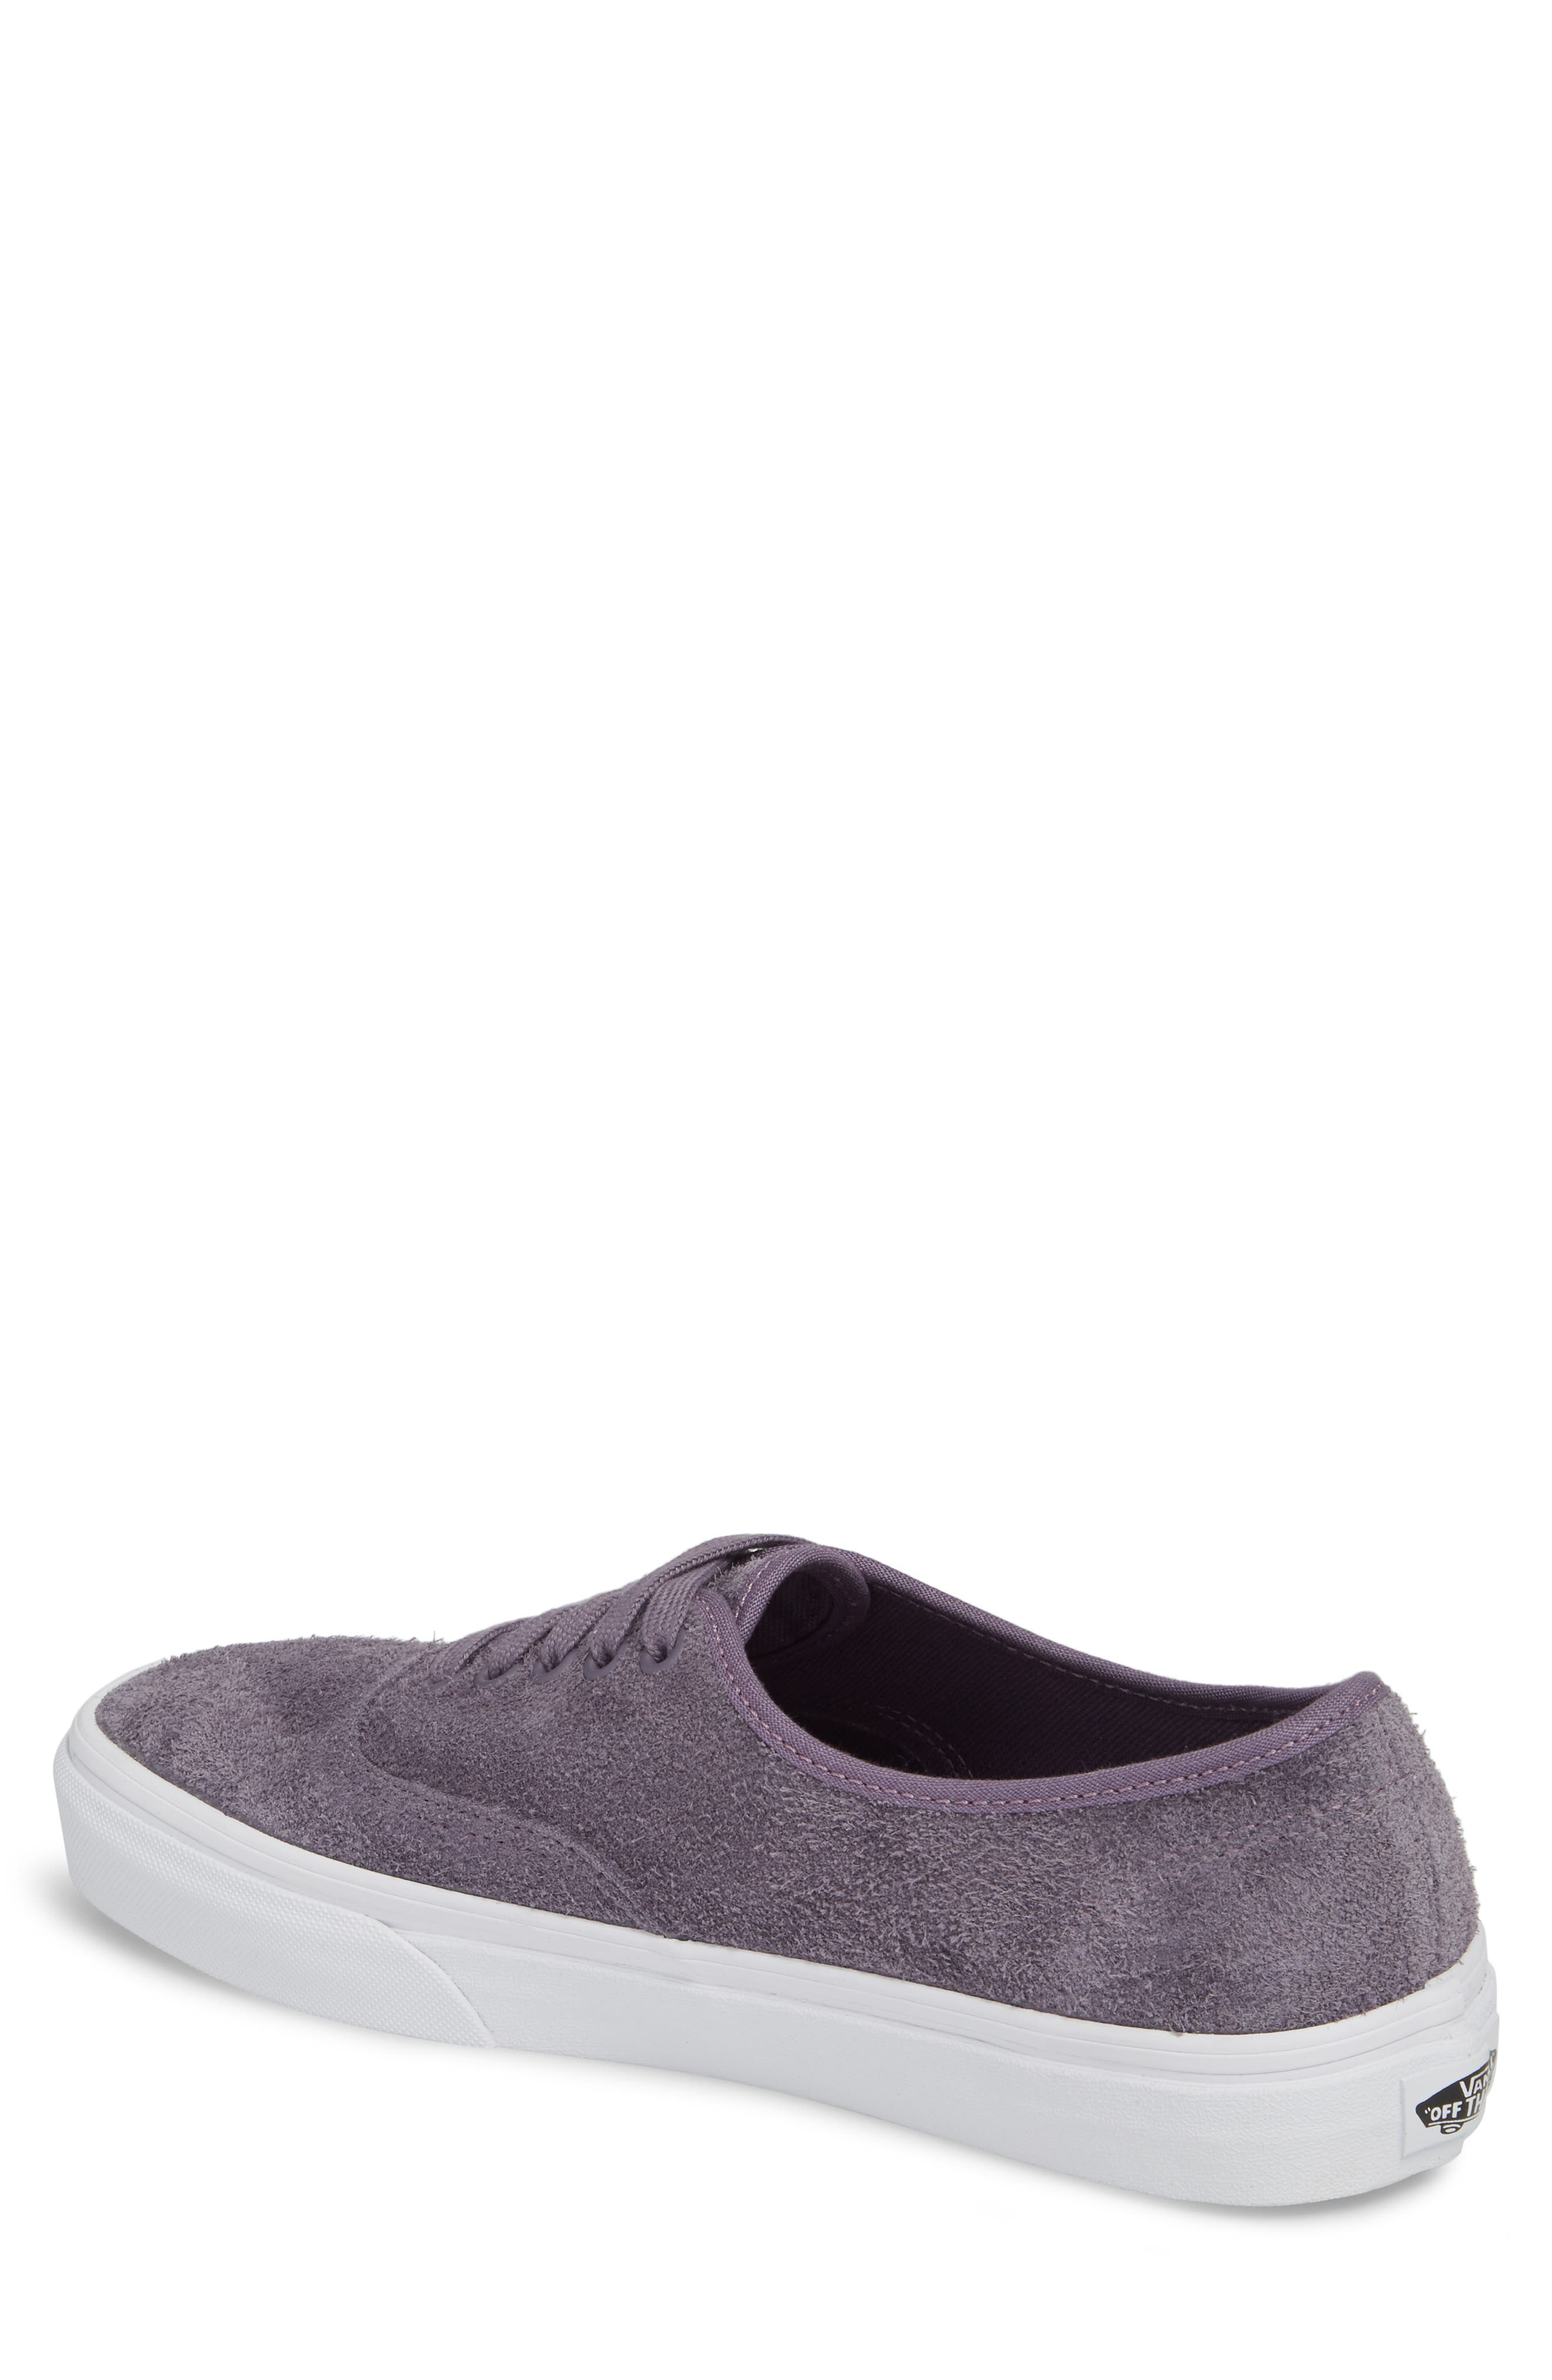 Authentic Hairy Suede Low Top Sneaker,                             Alternate thumbnail 2, color,                             510